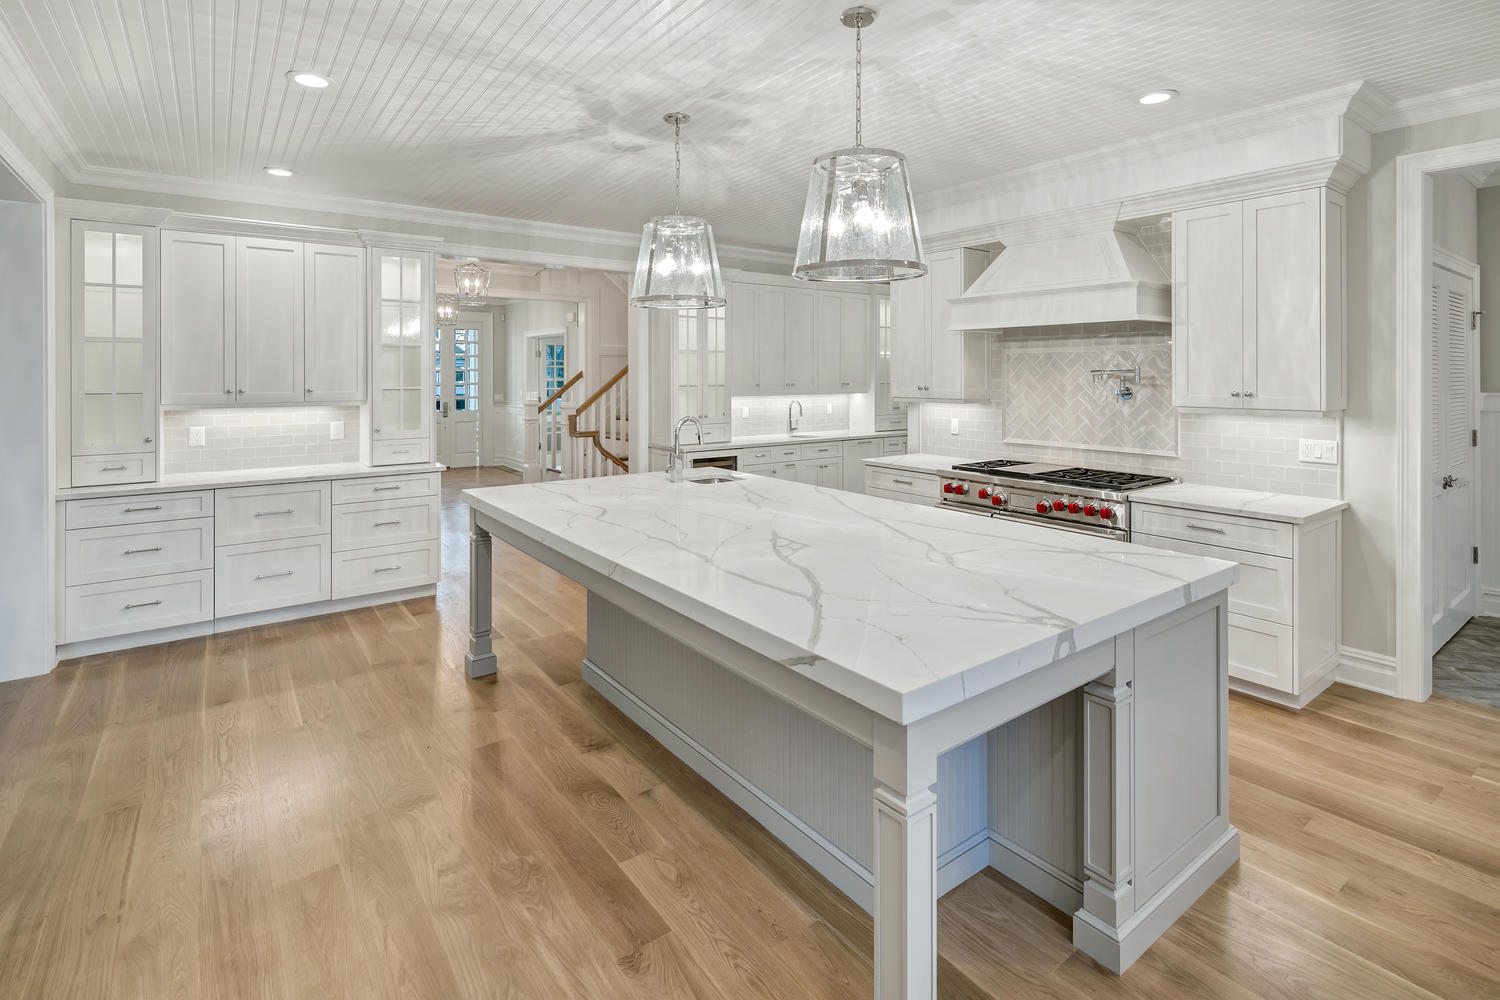 Kitchen Islands & Peninsulas | Design Line Kitchens in Sea Girt, NJ